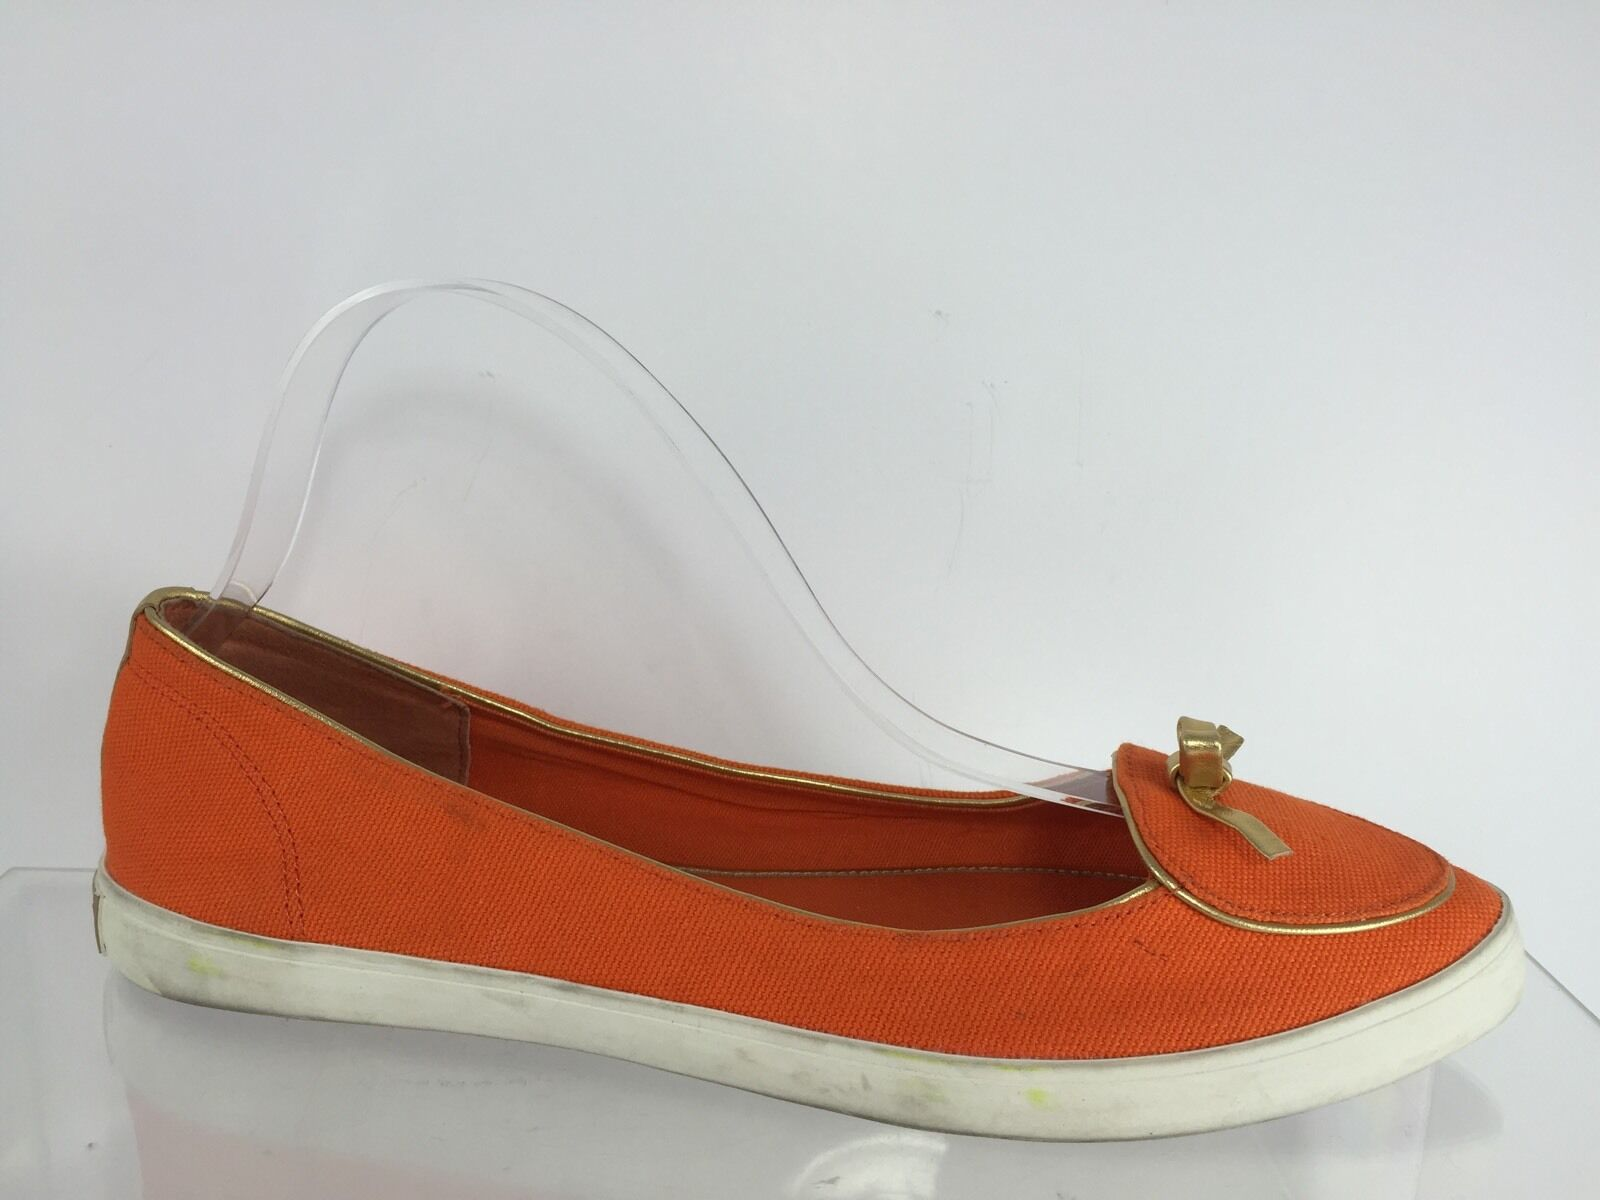 Tory Burch pour femme Orange Flats 8 m